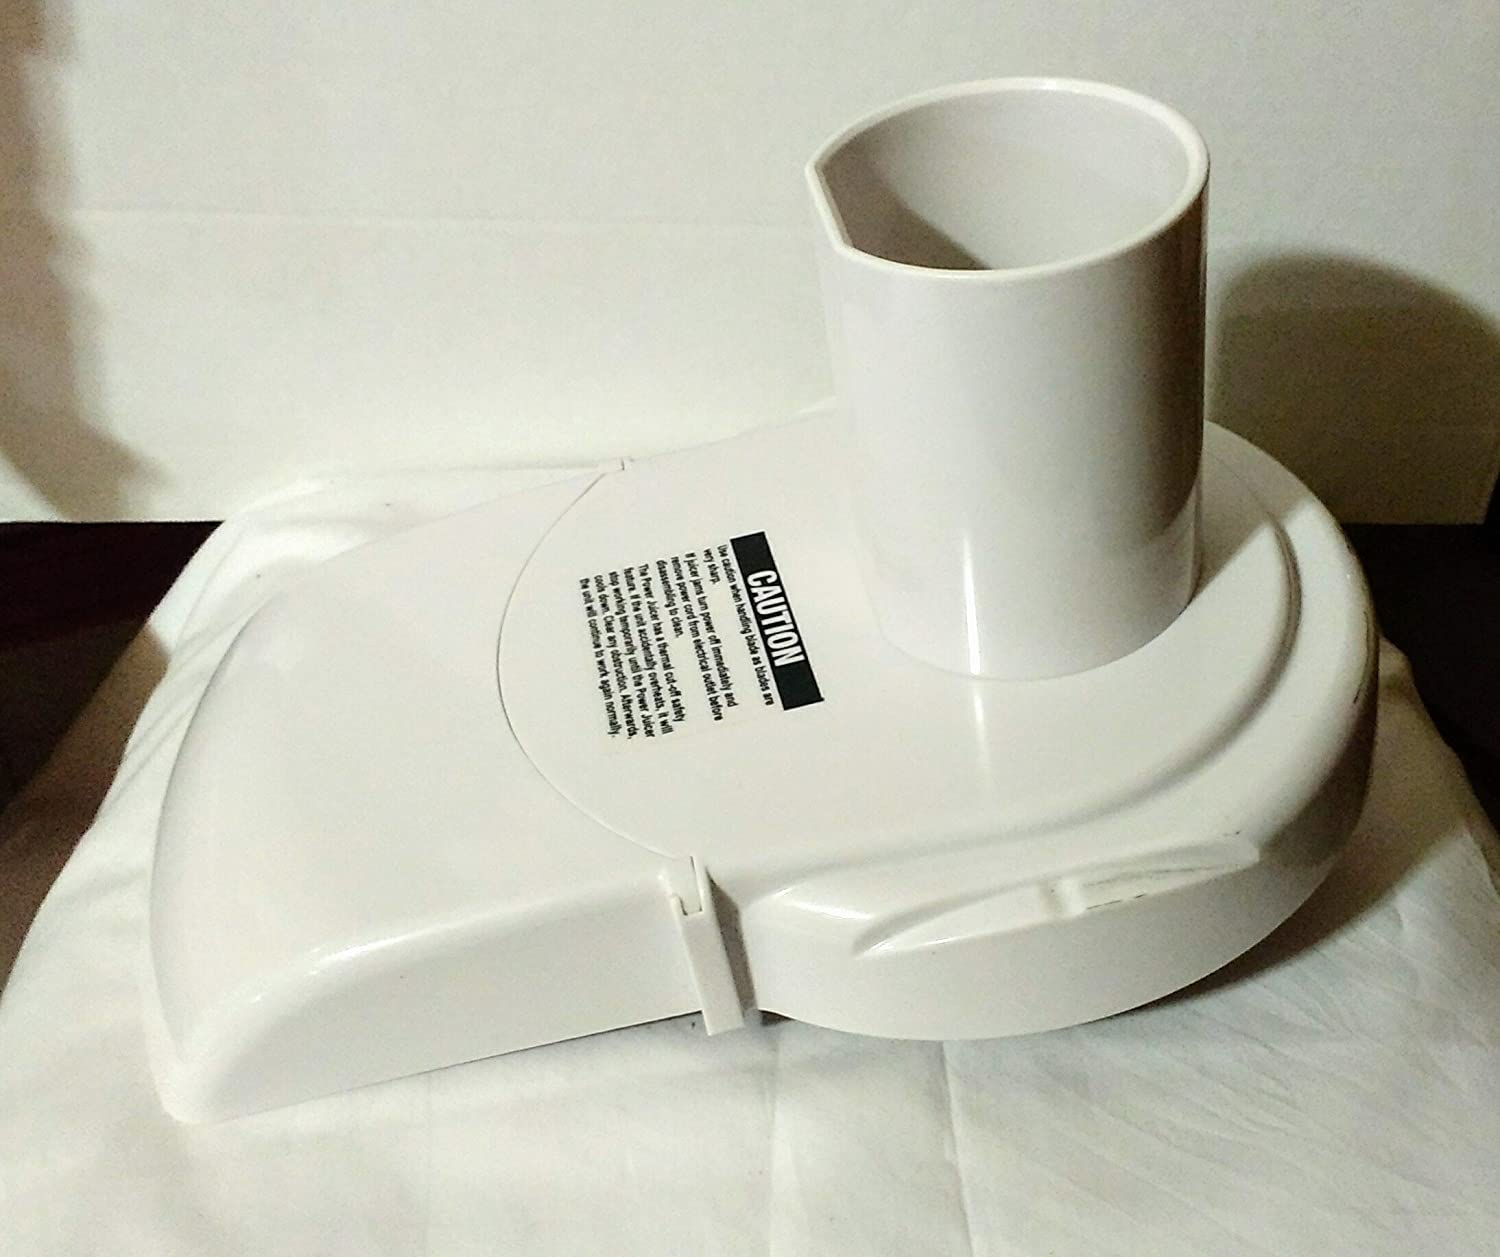 Jack Lalanne CL-003AP Replacement Pulp Guard Juicer Cover White